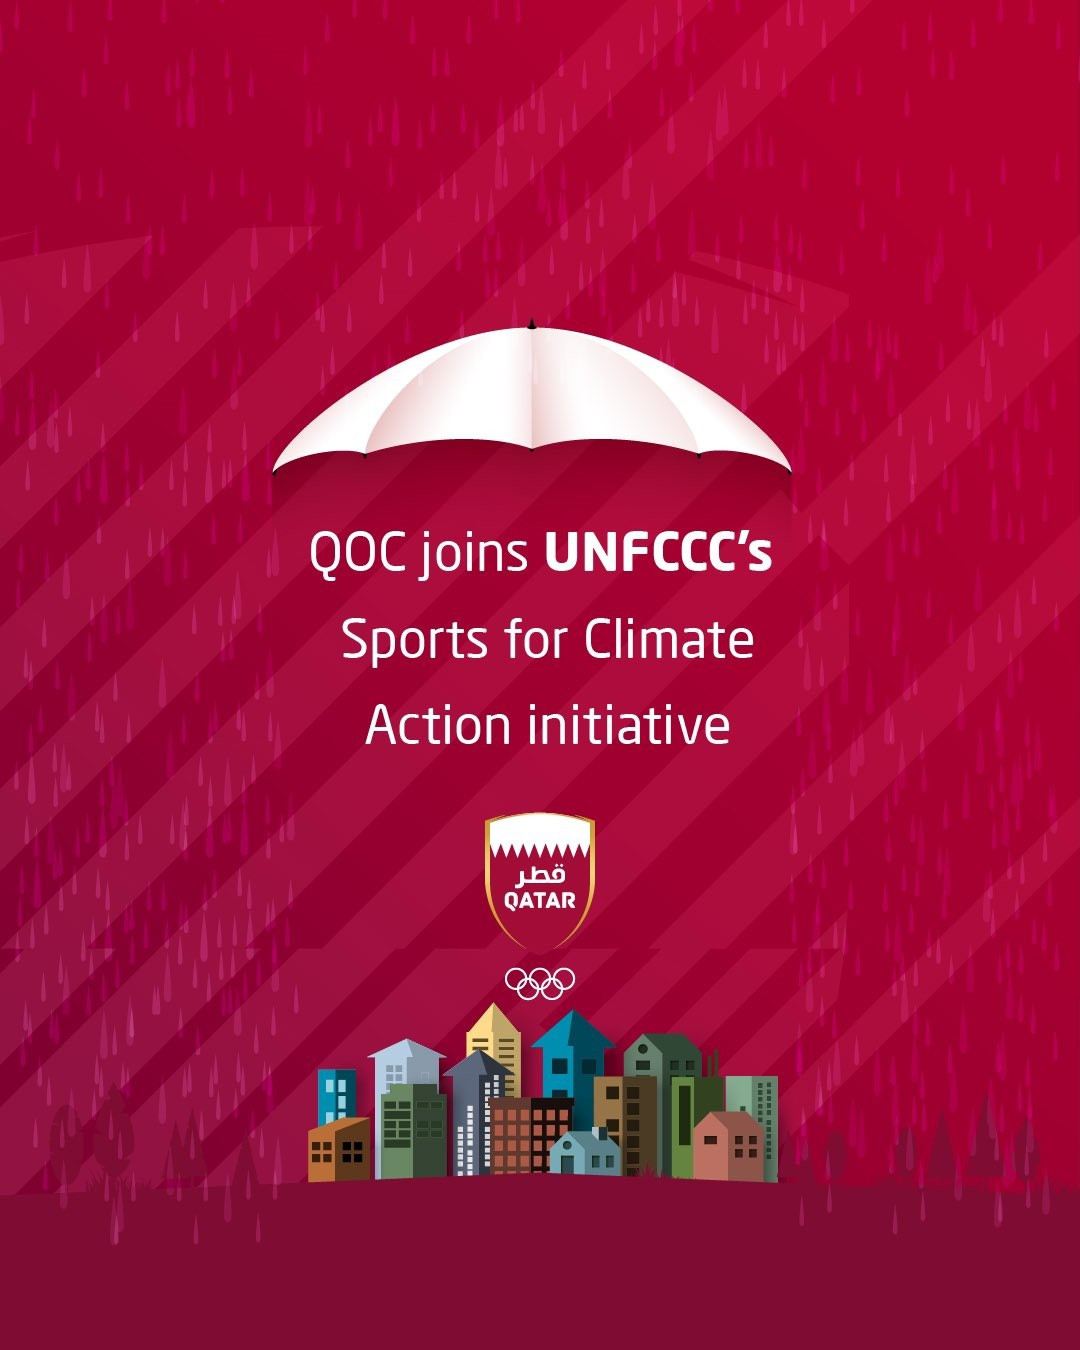 Qatar Olympic Committee signs up to UNFCCC Sports for Climate Action initiative